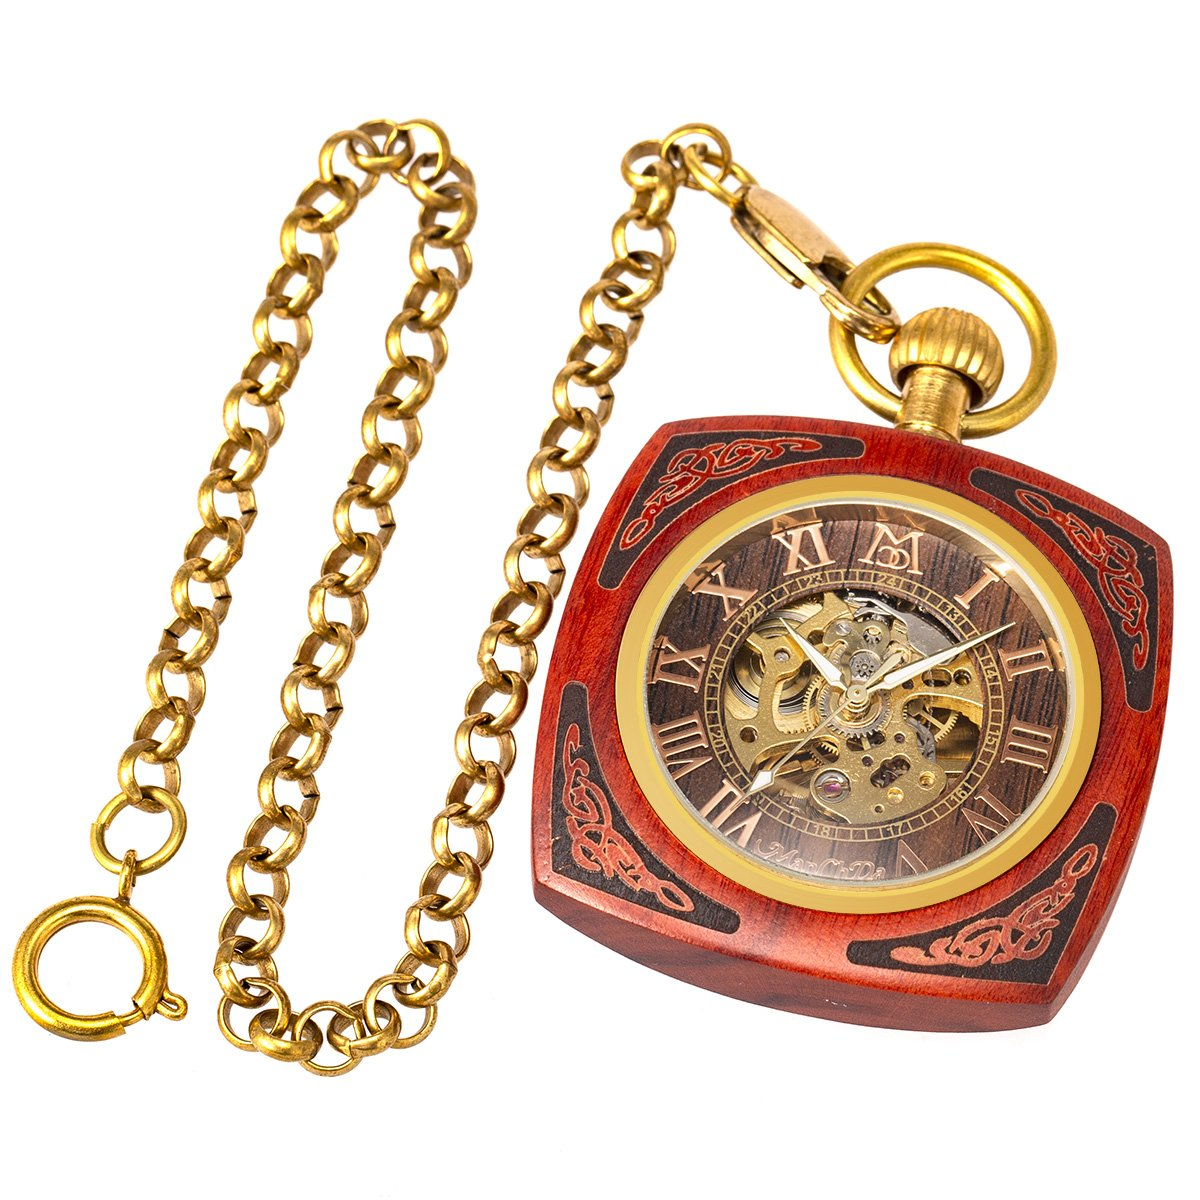 ManChDa Roman Copper Wooden Steampunk Mechanical Skeleton Pocket Watch With Chain Gift Box (4.Square Shape Roman Copper Red Wooden) by ManChDa (Image #4)